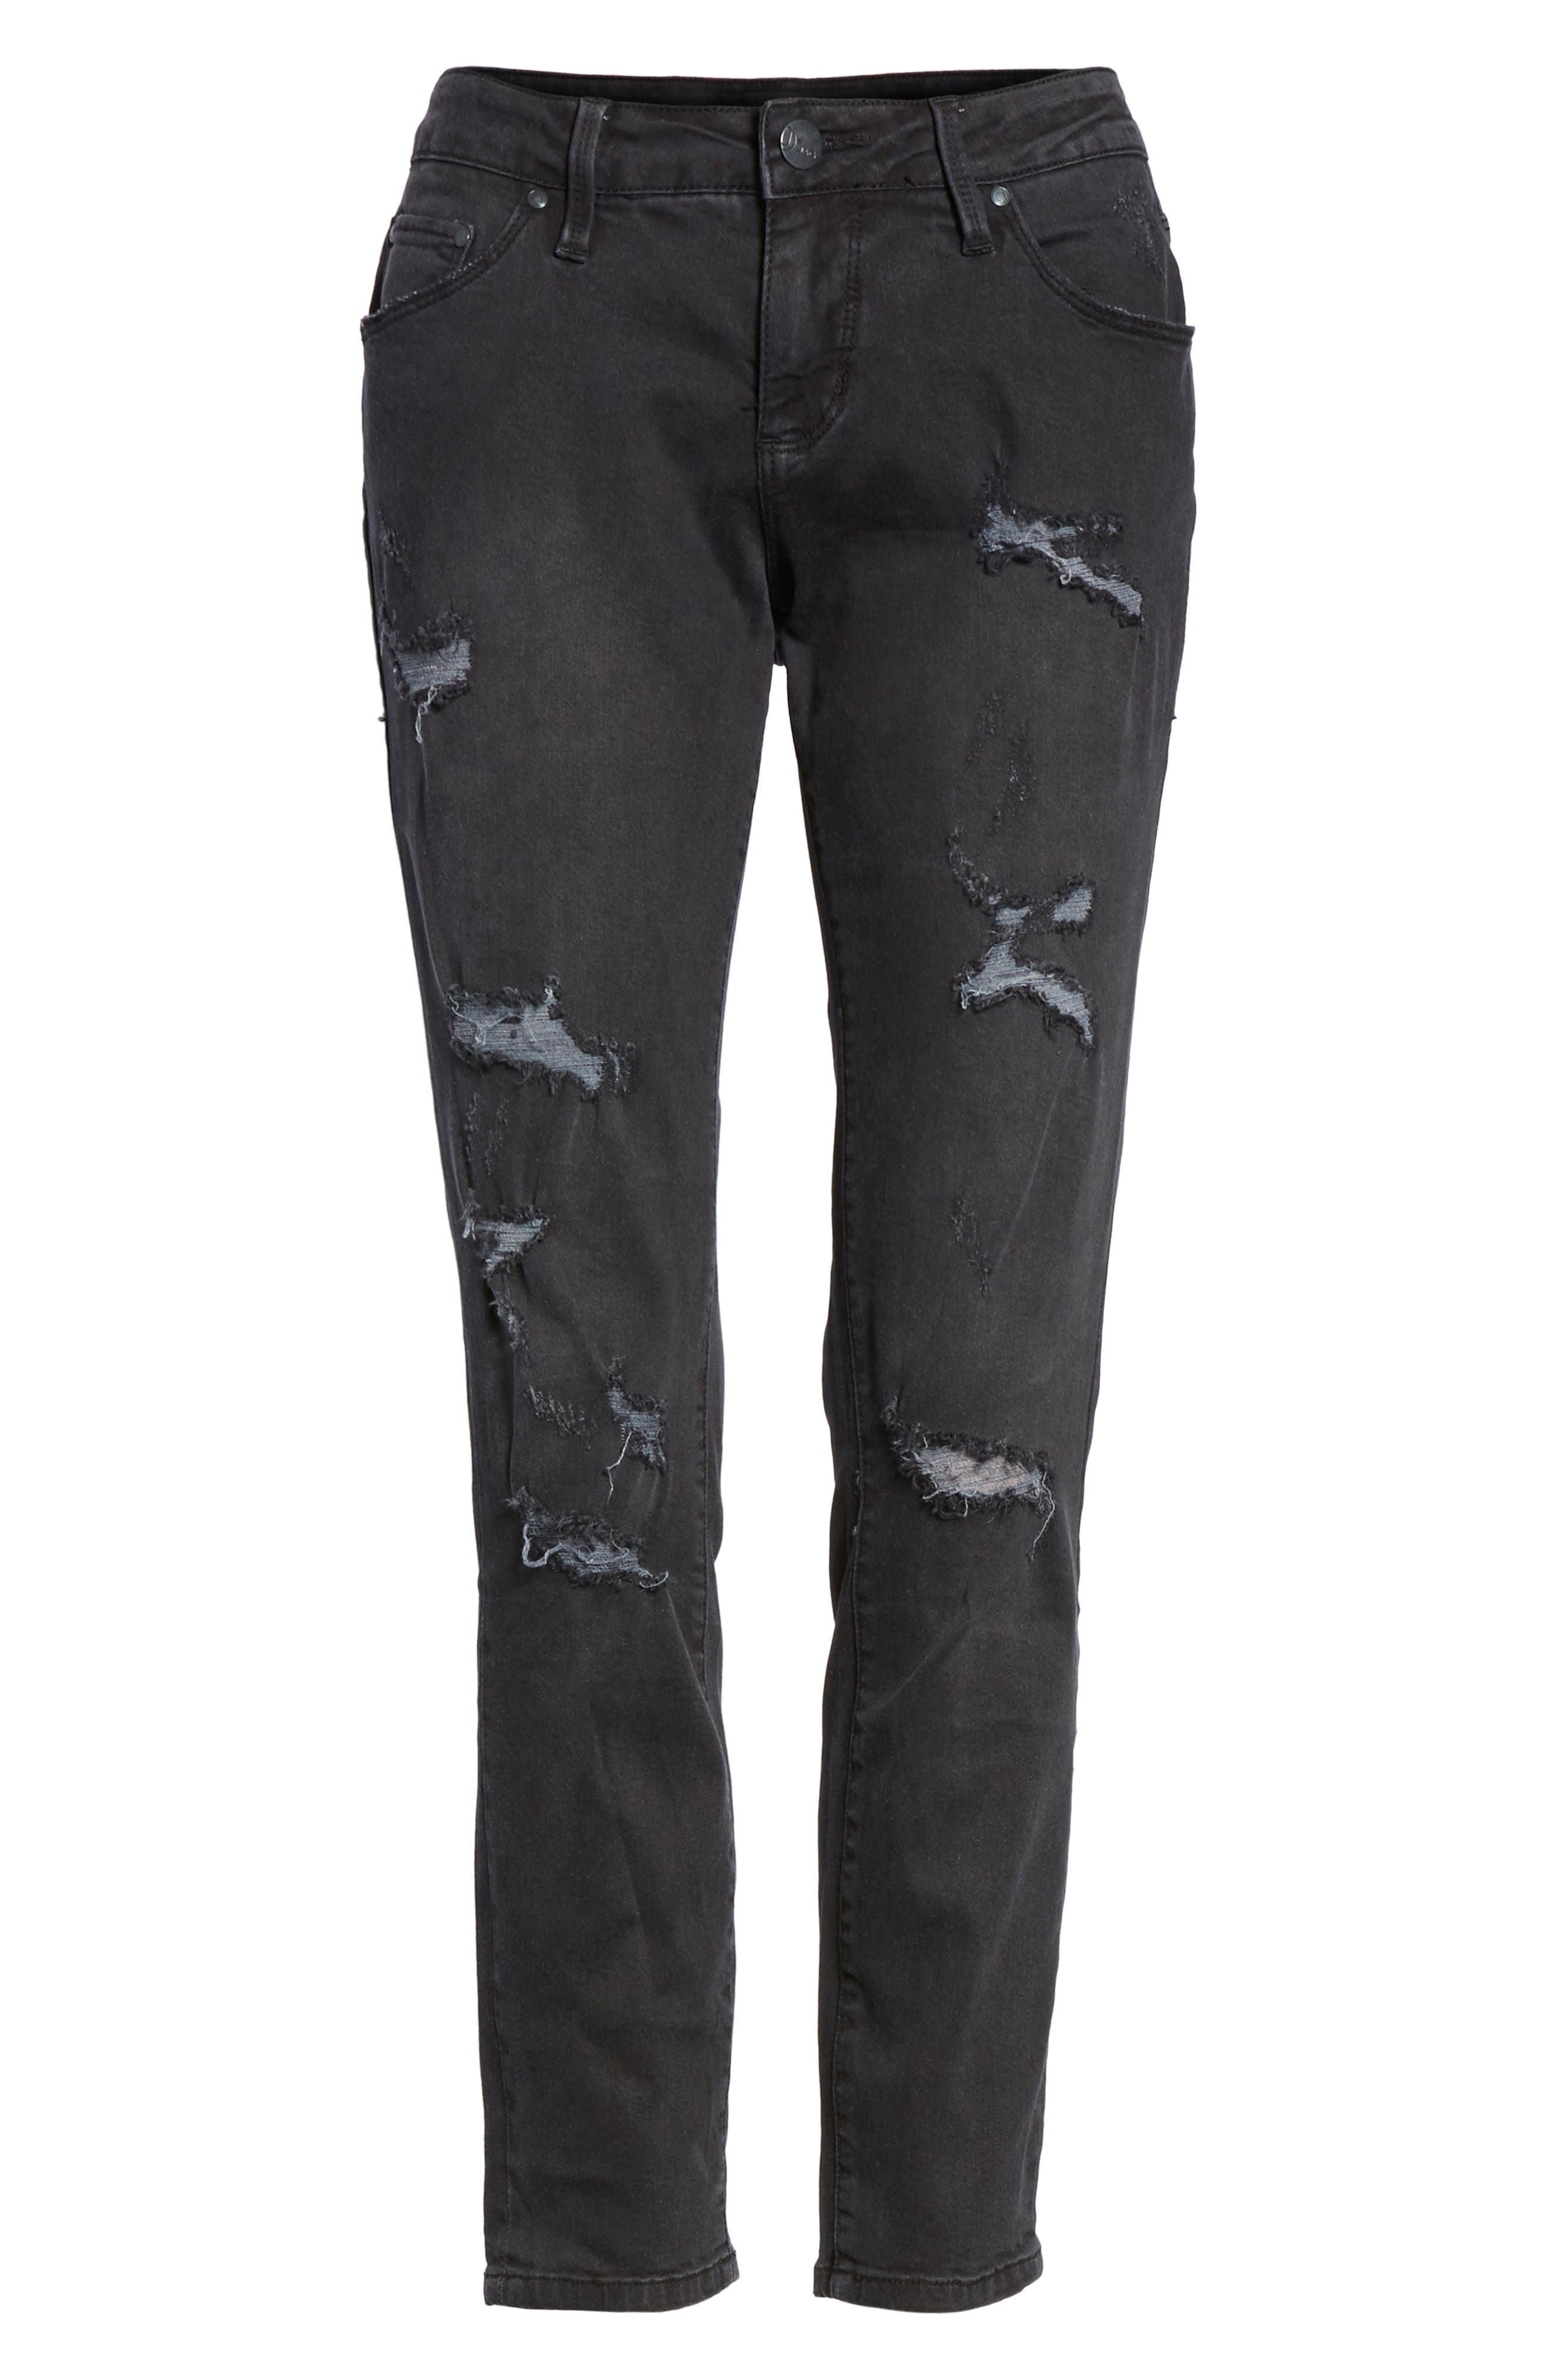 Mera Distressed Skinny Ankle Jeans,                             Alternate thumbnail 6, color,